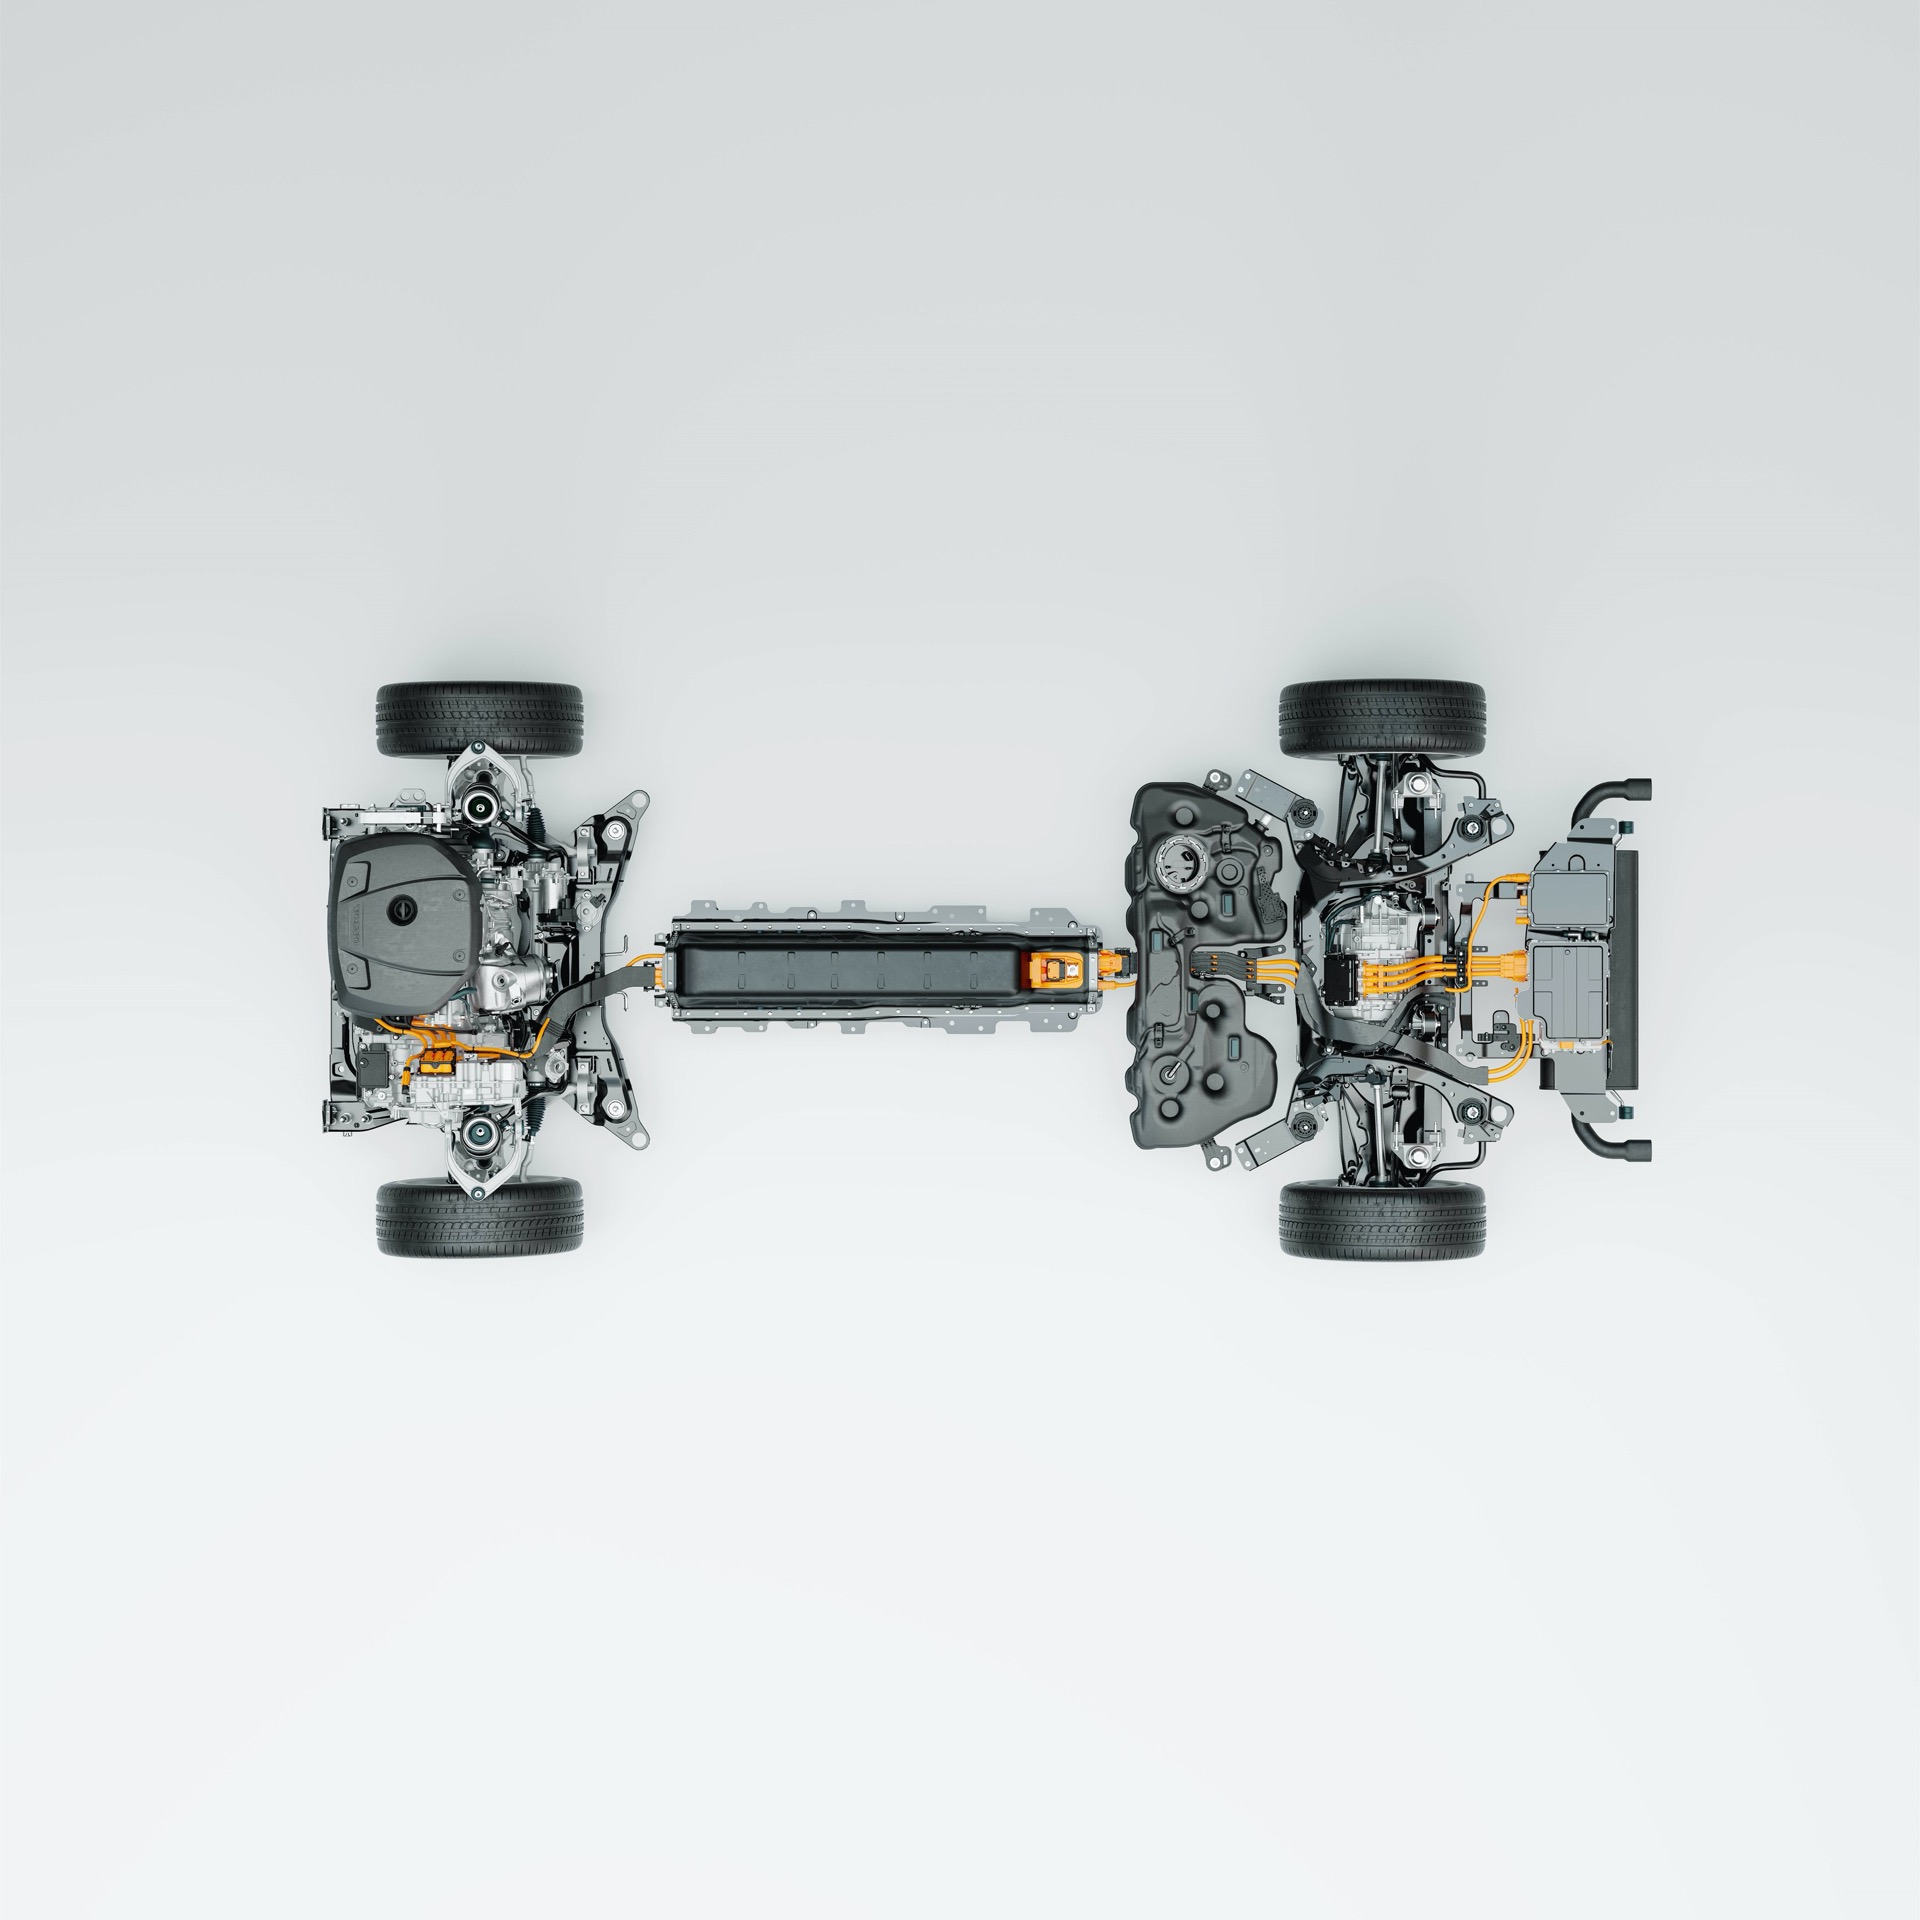 Technical Cutaway: Volvo Cars' New Recharge Plug In Hybrid Powertrain Outperforms Average Daily Mileage On A Single Charge